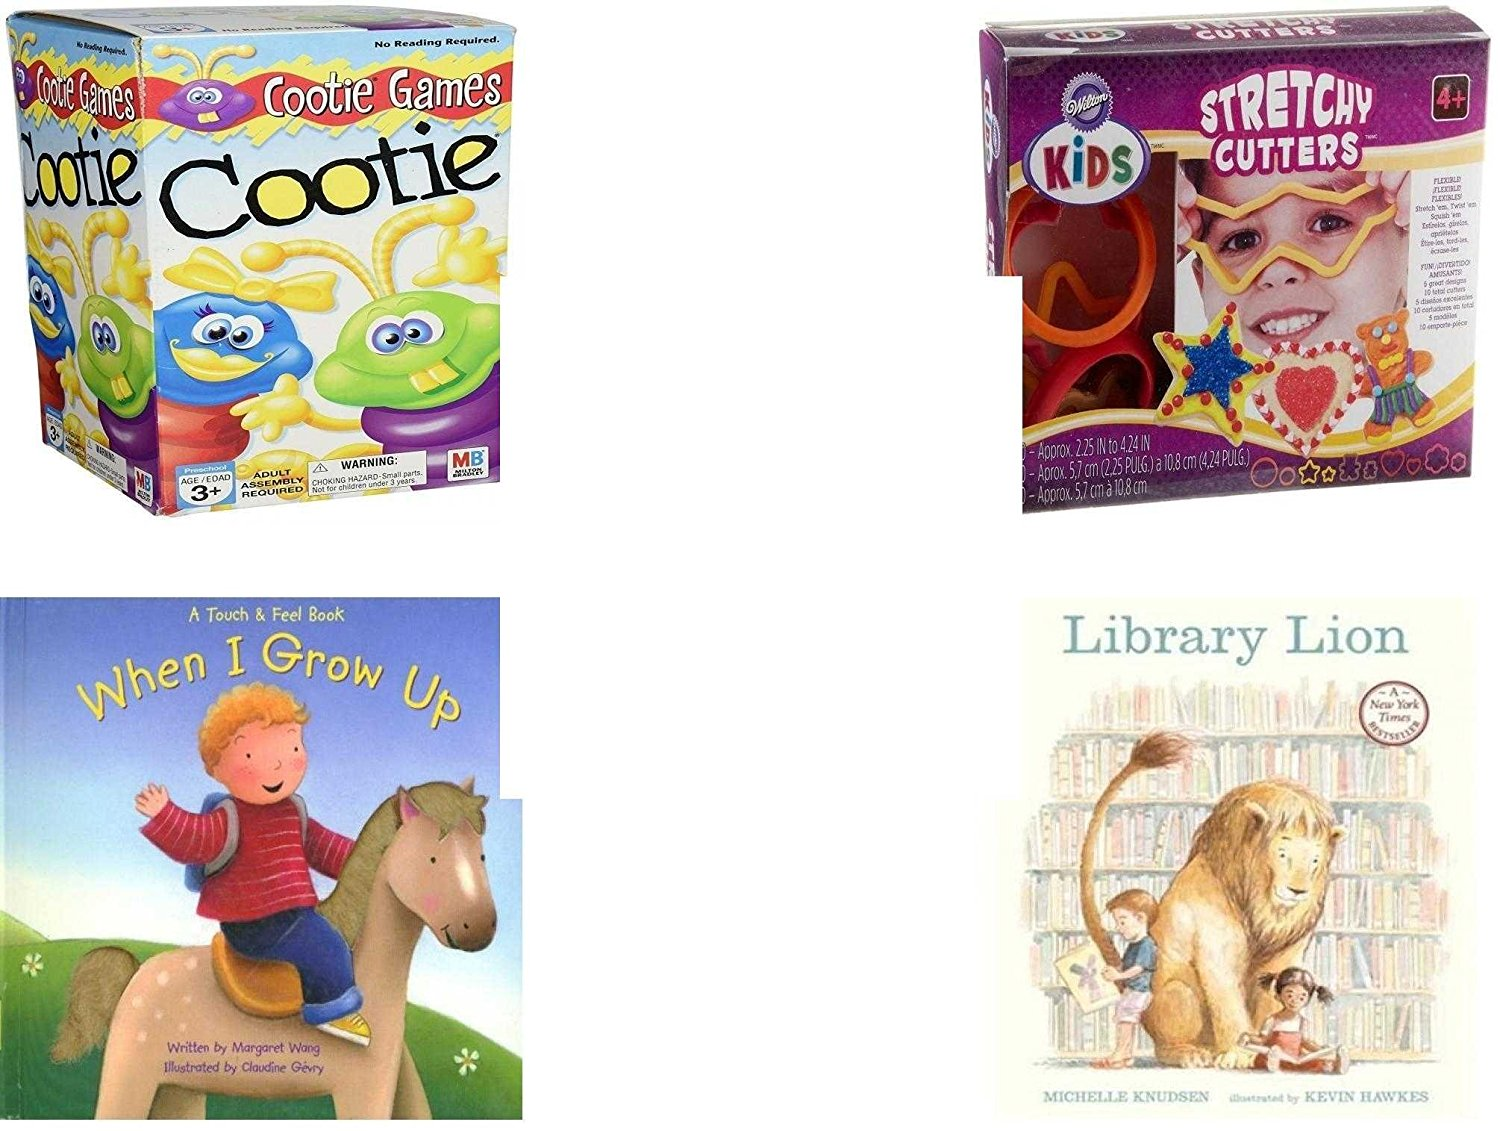 Children's Gift Bundle - Ages 3-5 [5 Piece] - Cootie Game - Wilton Kids Stretchy Silicone Cookie Cutter Set, 10-Piece - Ty Beanie Baby - Beani the Gray Cat - When I Grow Up Hardcover Book - Library